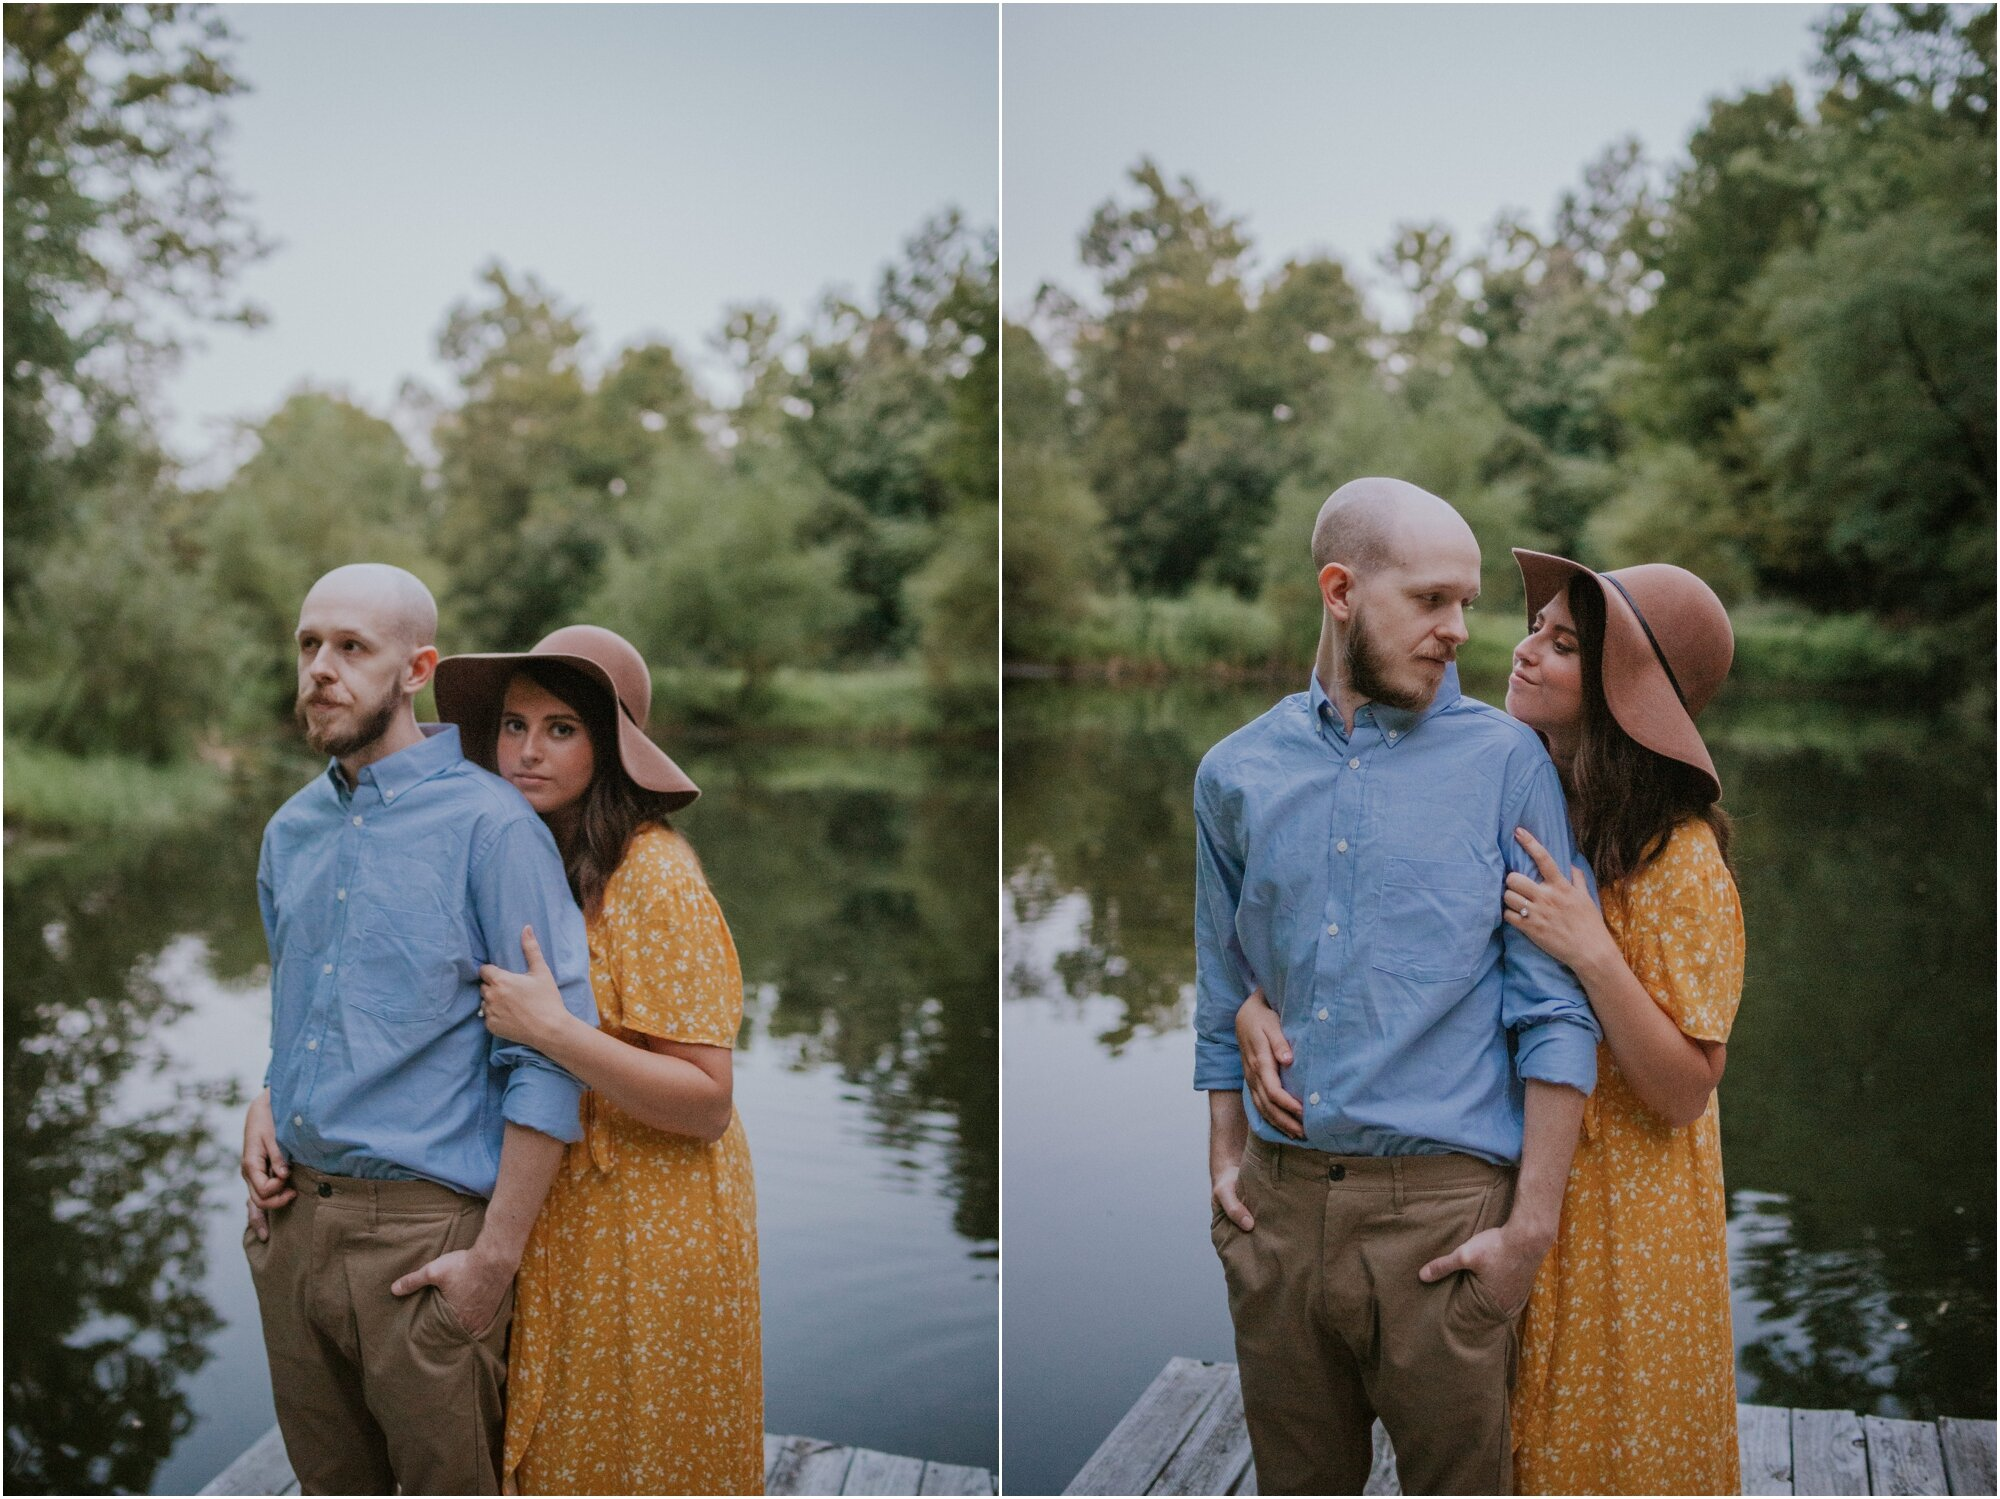 kingsport-tennessee-backyard-pond-bays-mountain-summer-engagement-session_0054.jpg